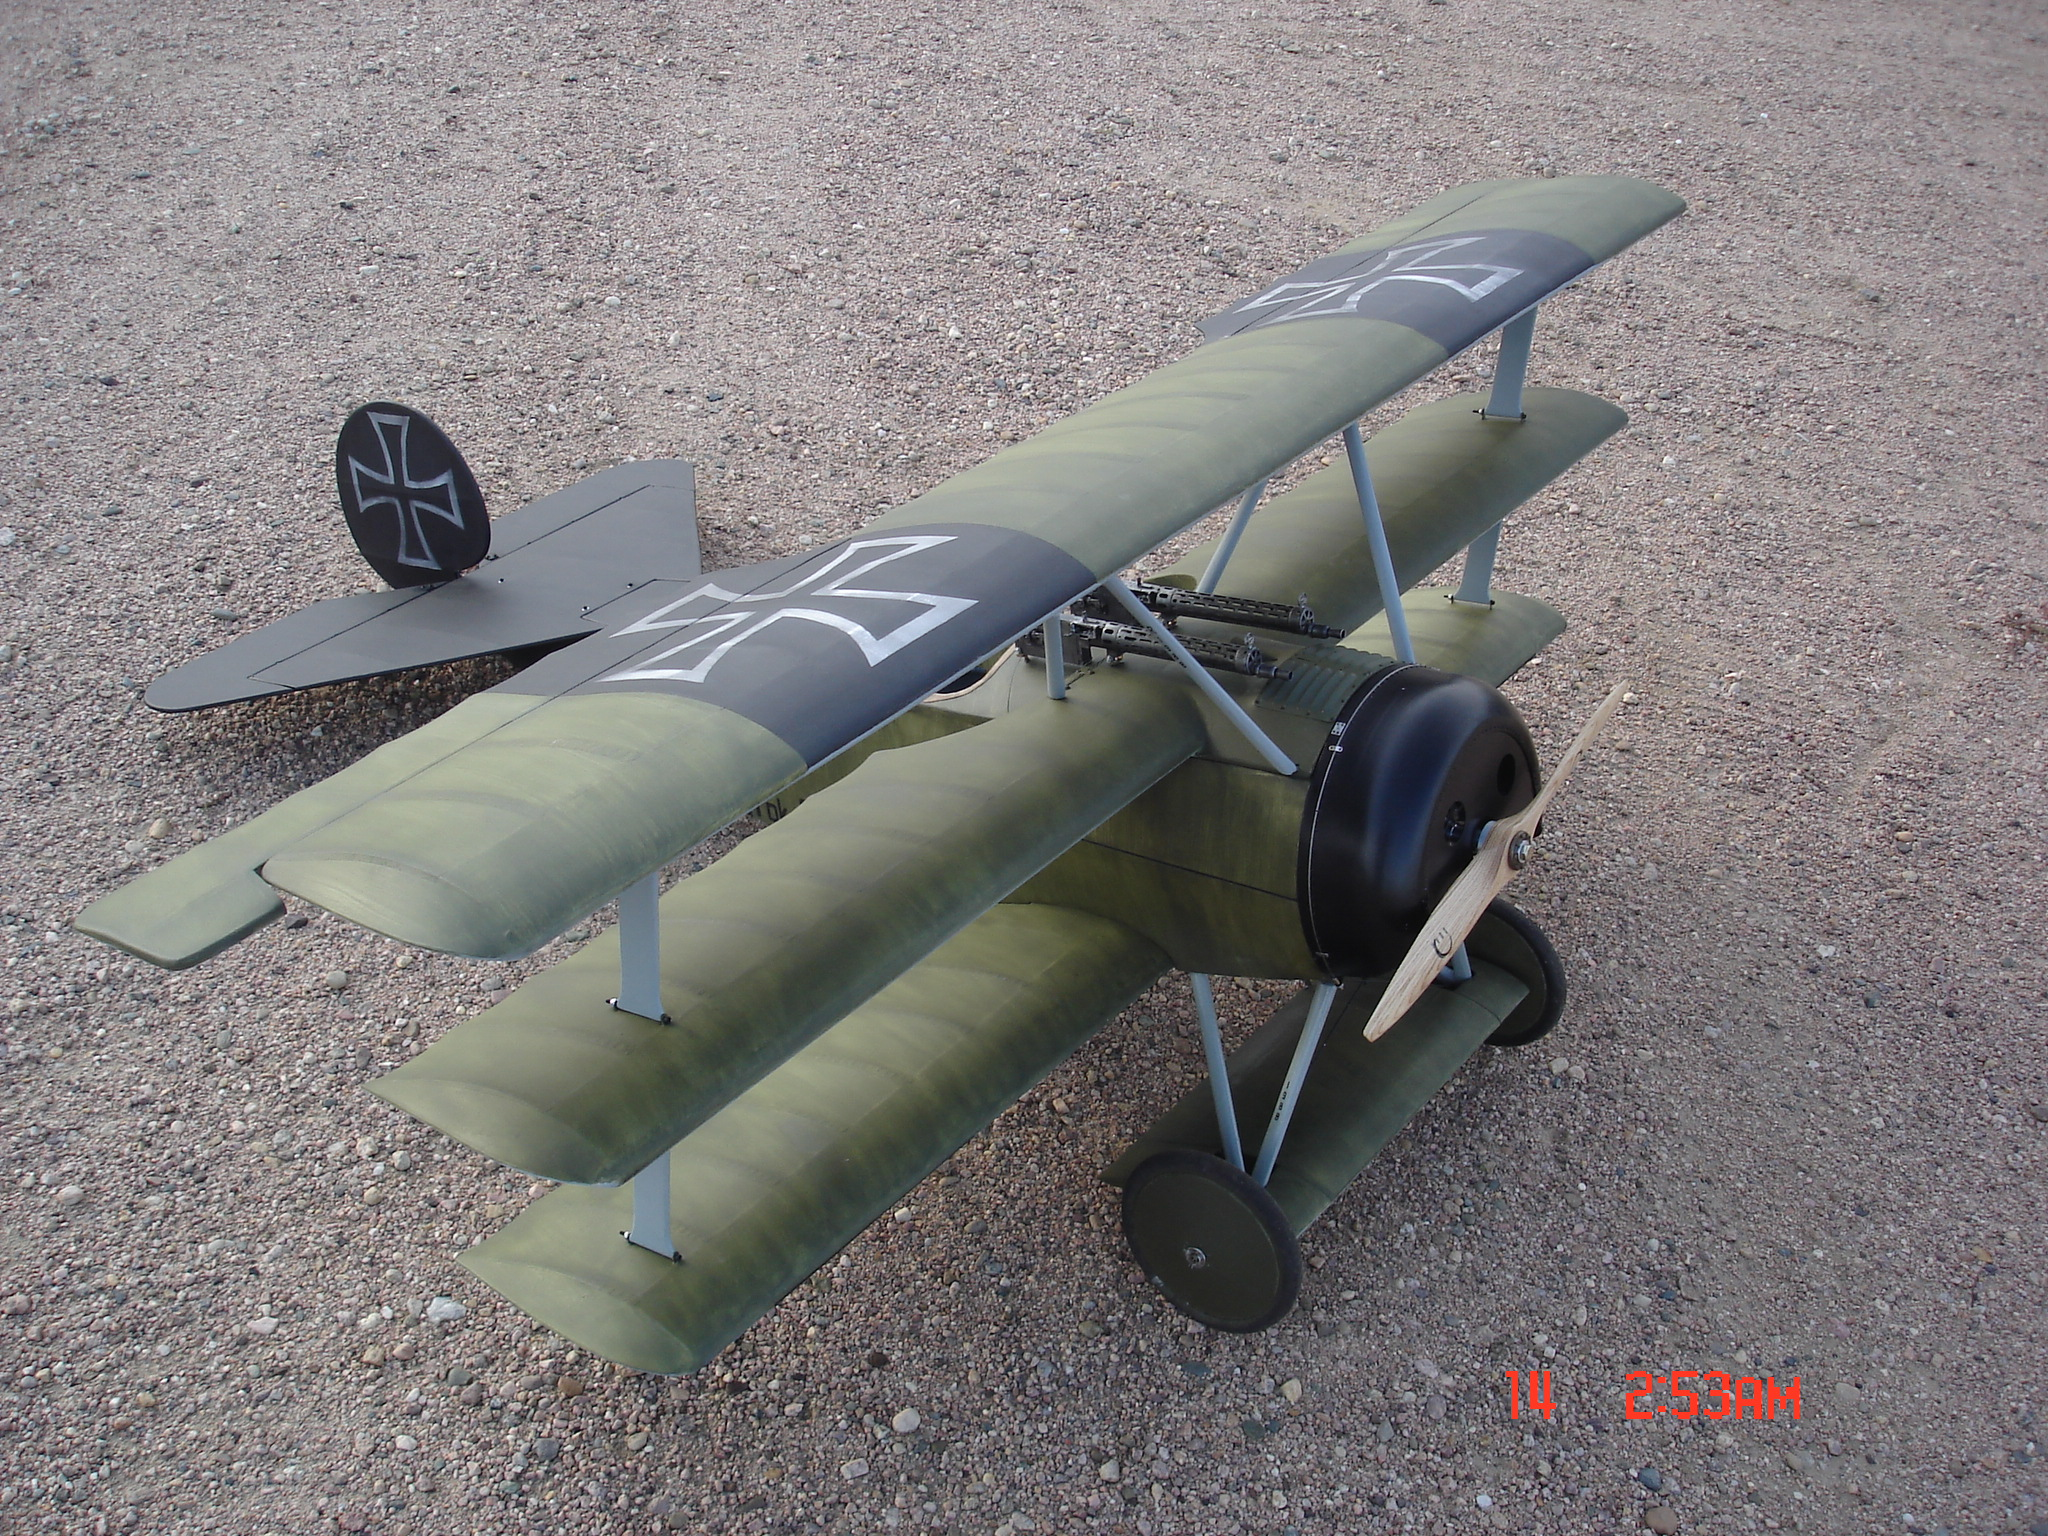 Click image for larger version  Name:Fokker maiden 003.JPG Views:288 Size:1.43 MB ID:1958931